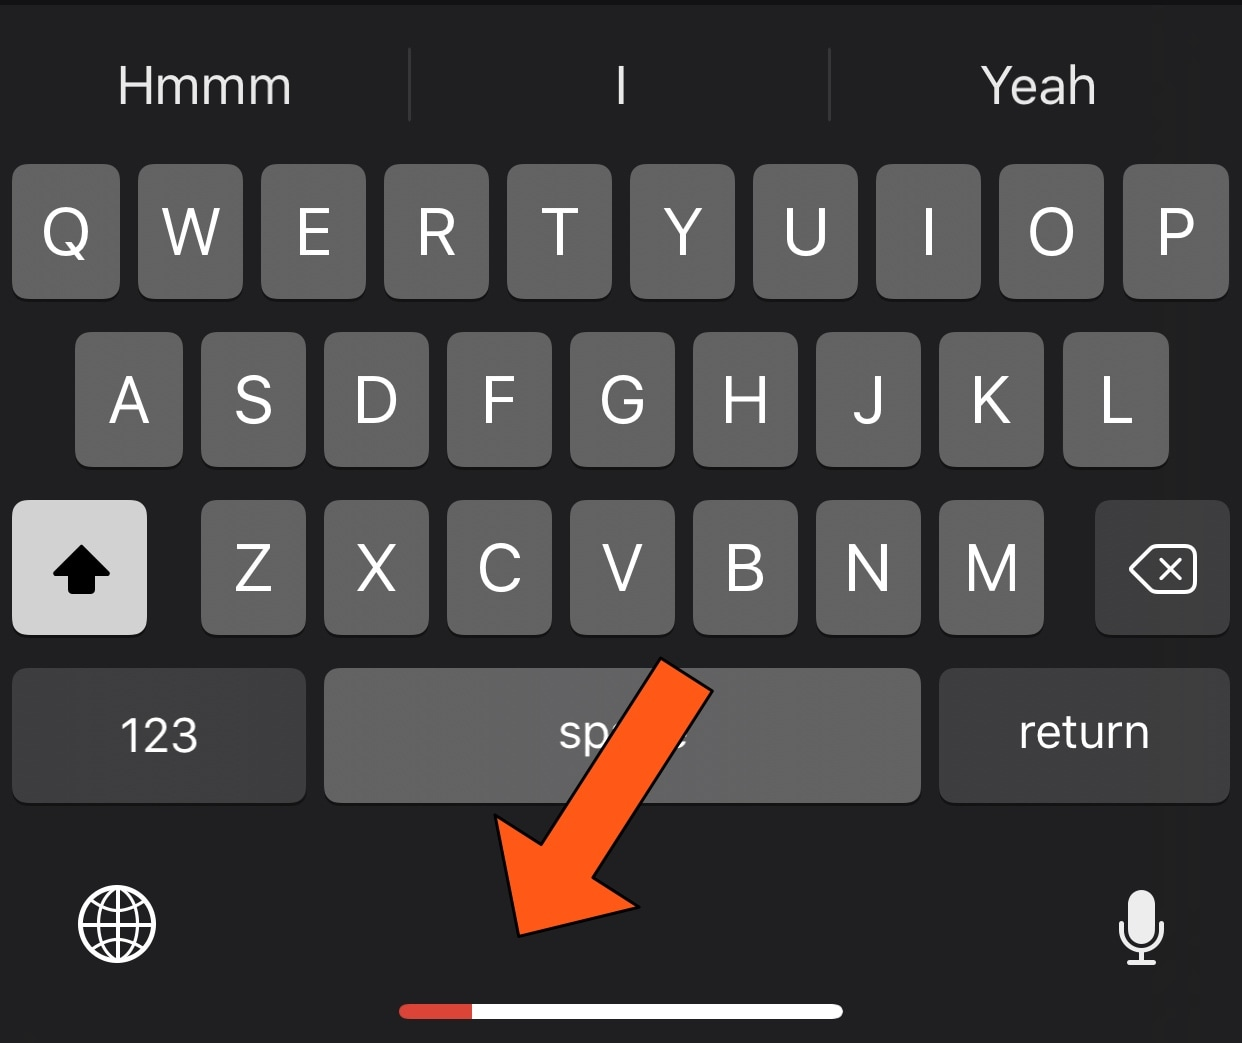 This tweak transforms the Home Bar into a Now Playing progress indicator